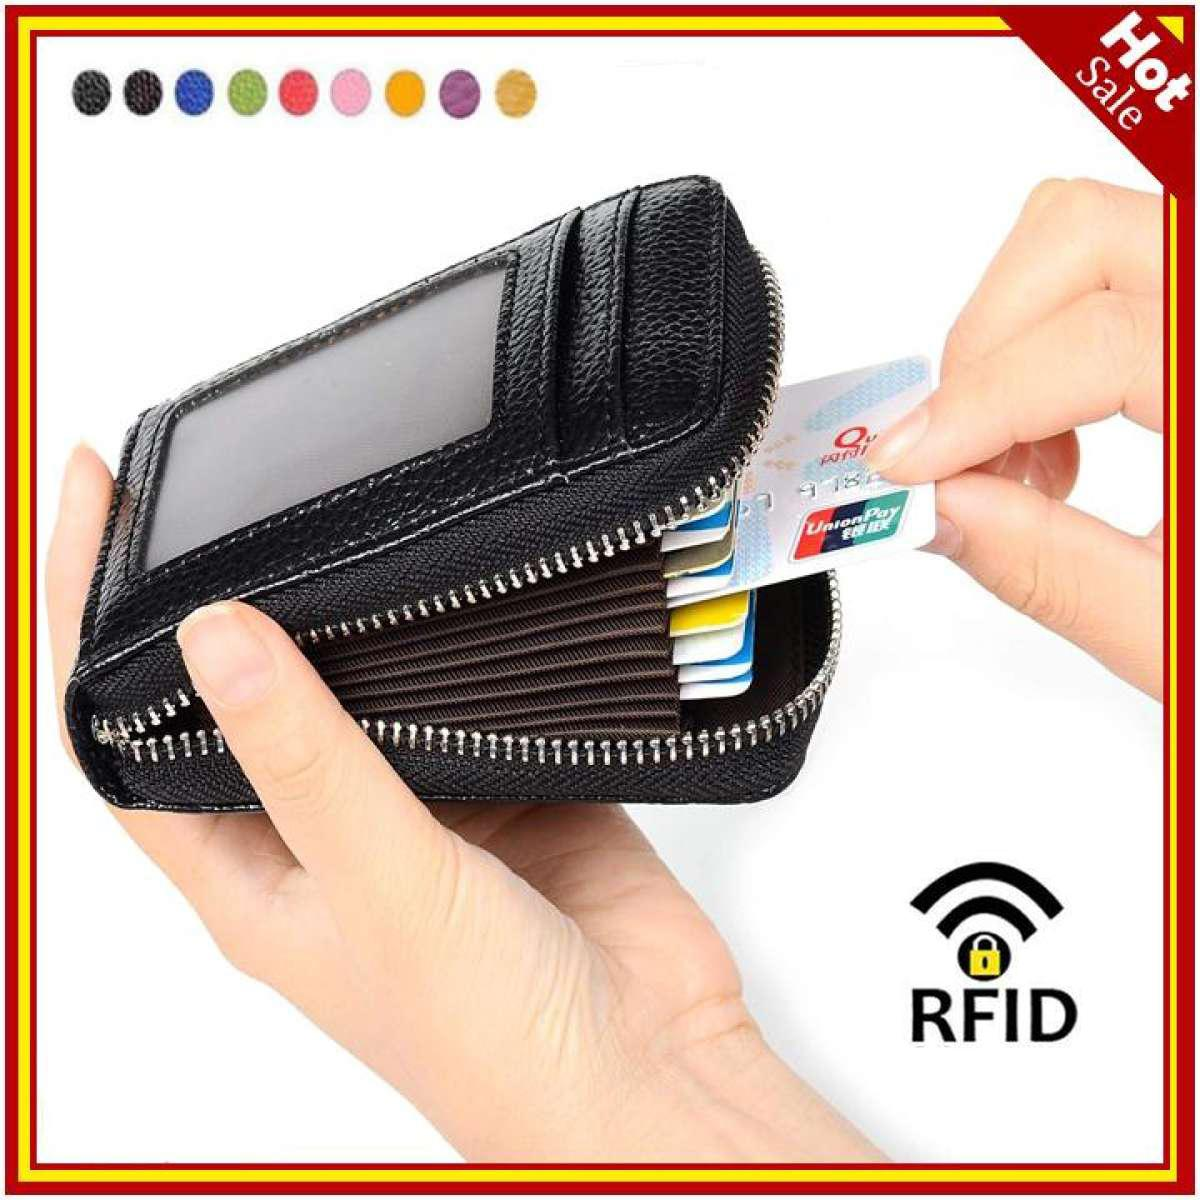 RFID Blocking Genuine Leather Credit Card Case Holder Security Travel Wallet Front Pocket Wallets for Men